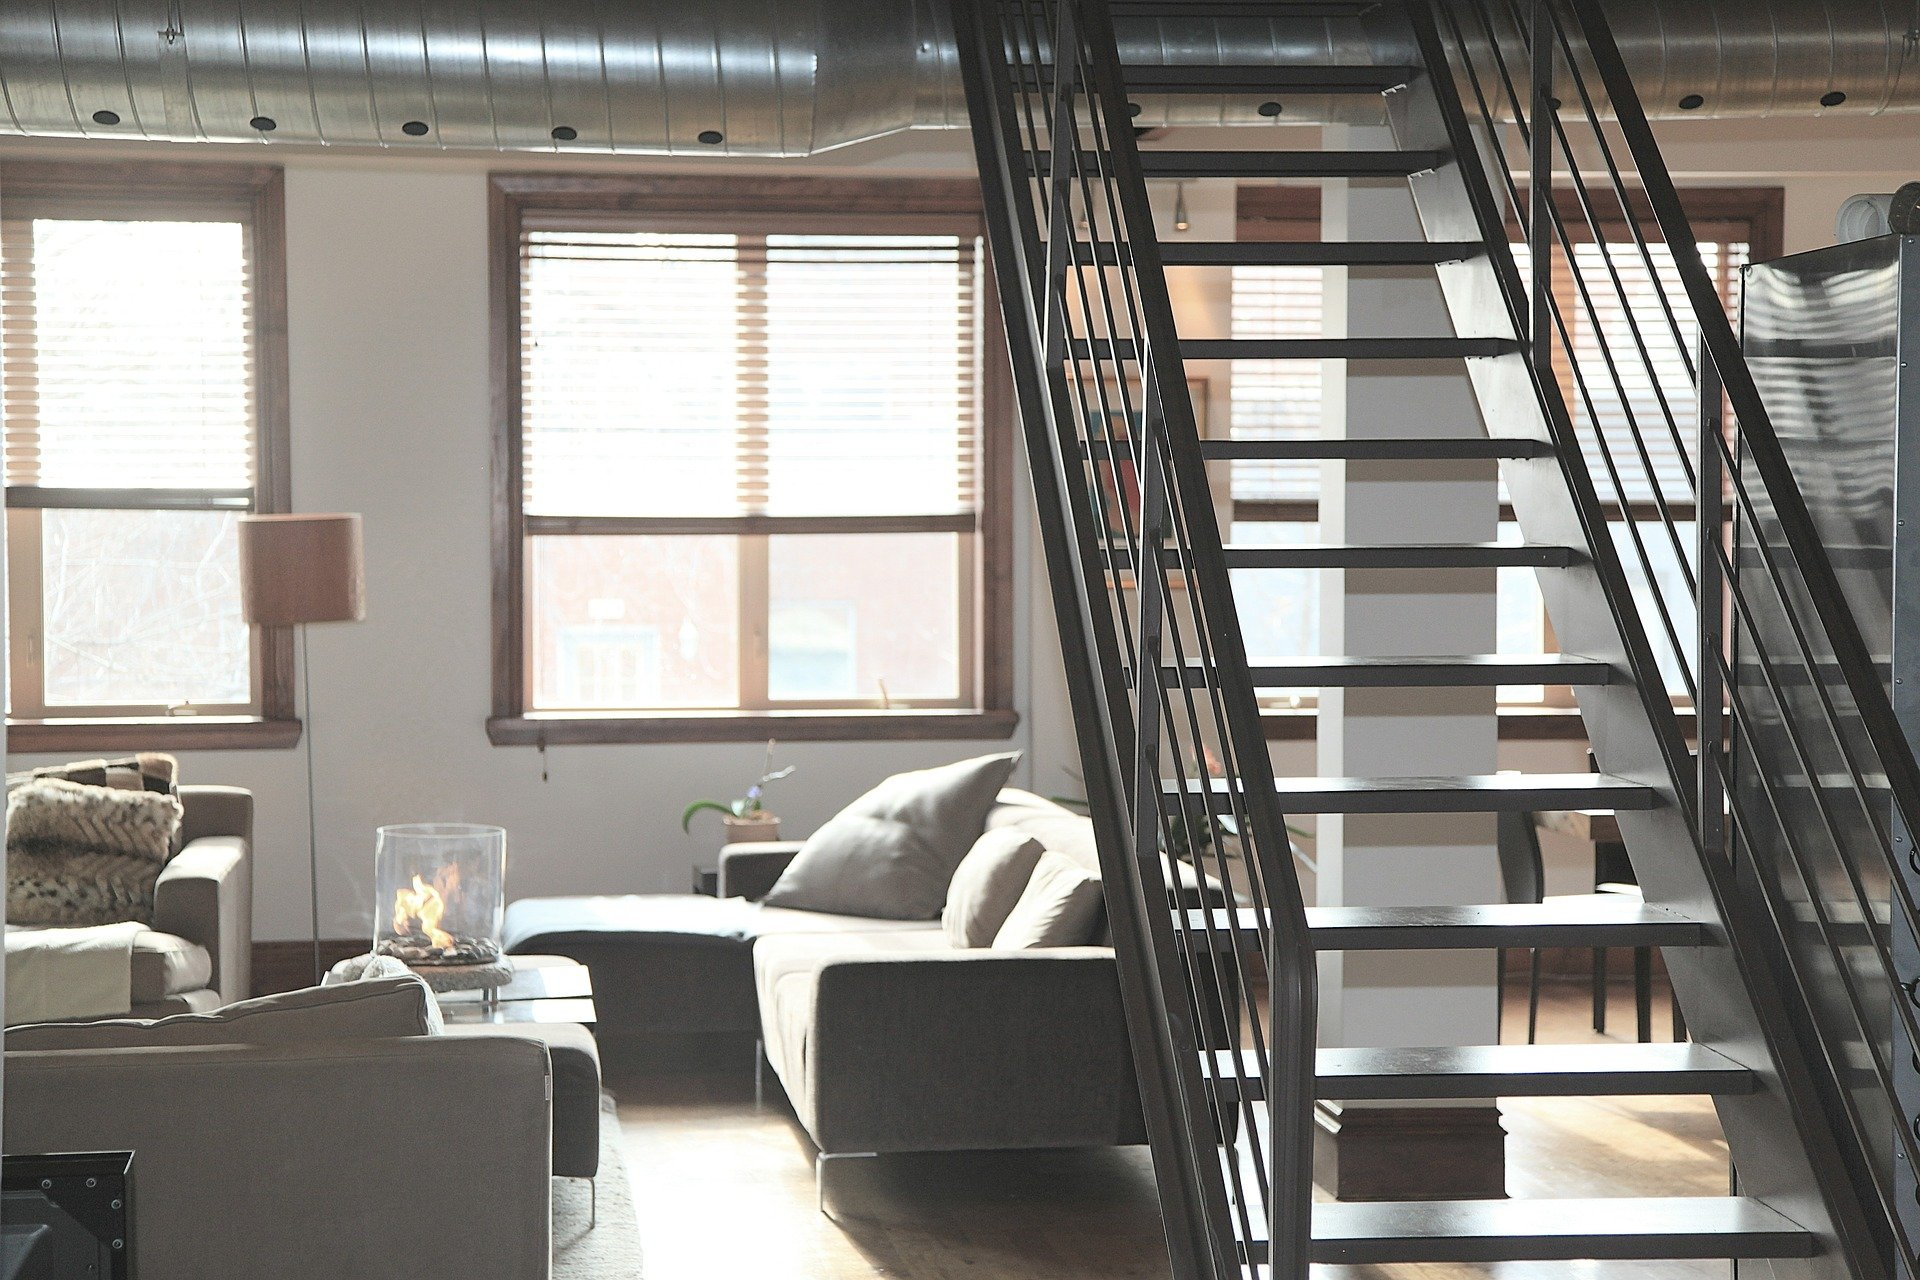 How Chapter 13 Bankruptcy Can Save You From Apartment Eviction